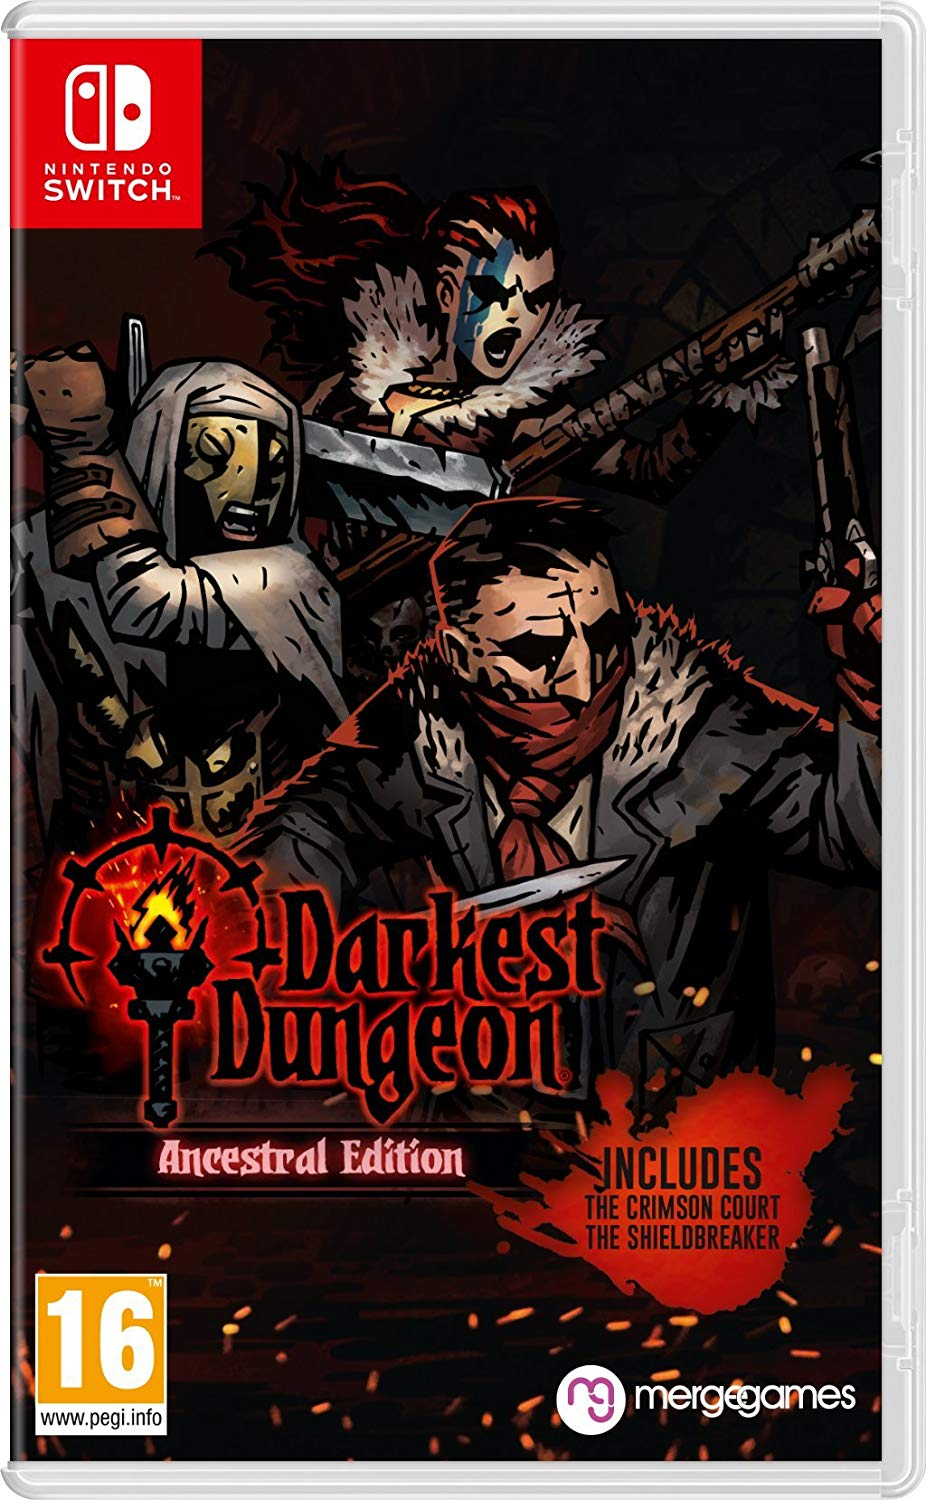 Darkest Dungeon: Ancestral Edition Nintendo Switch, Nintendo Switch, DVDMEGASTORE, DVDMEGASTORE